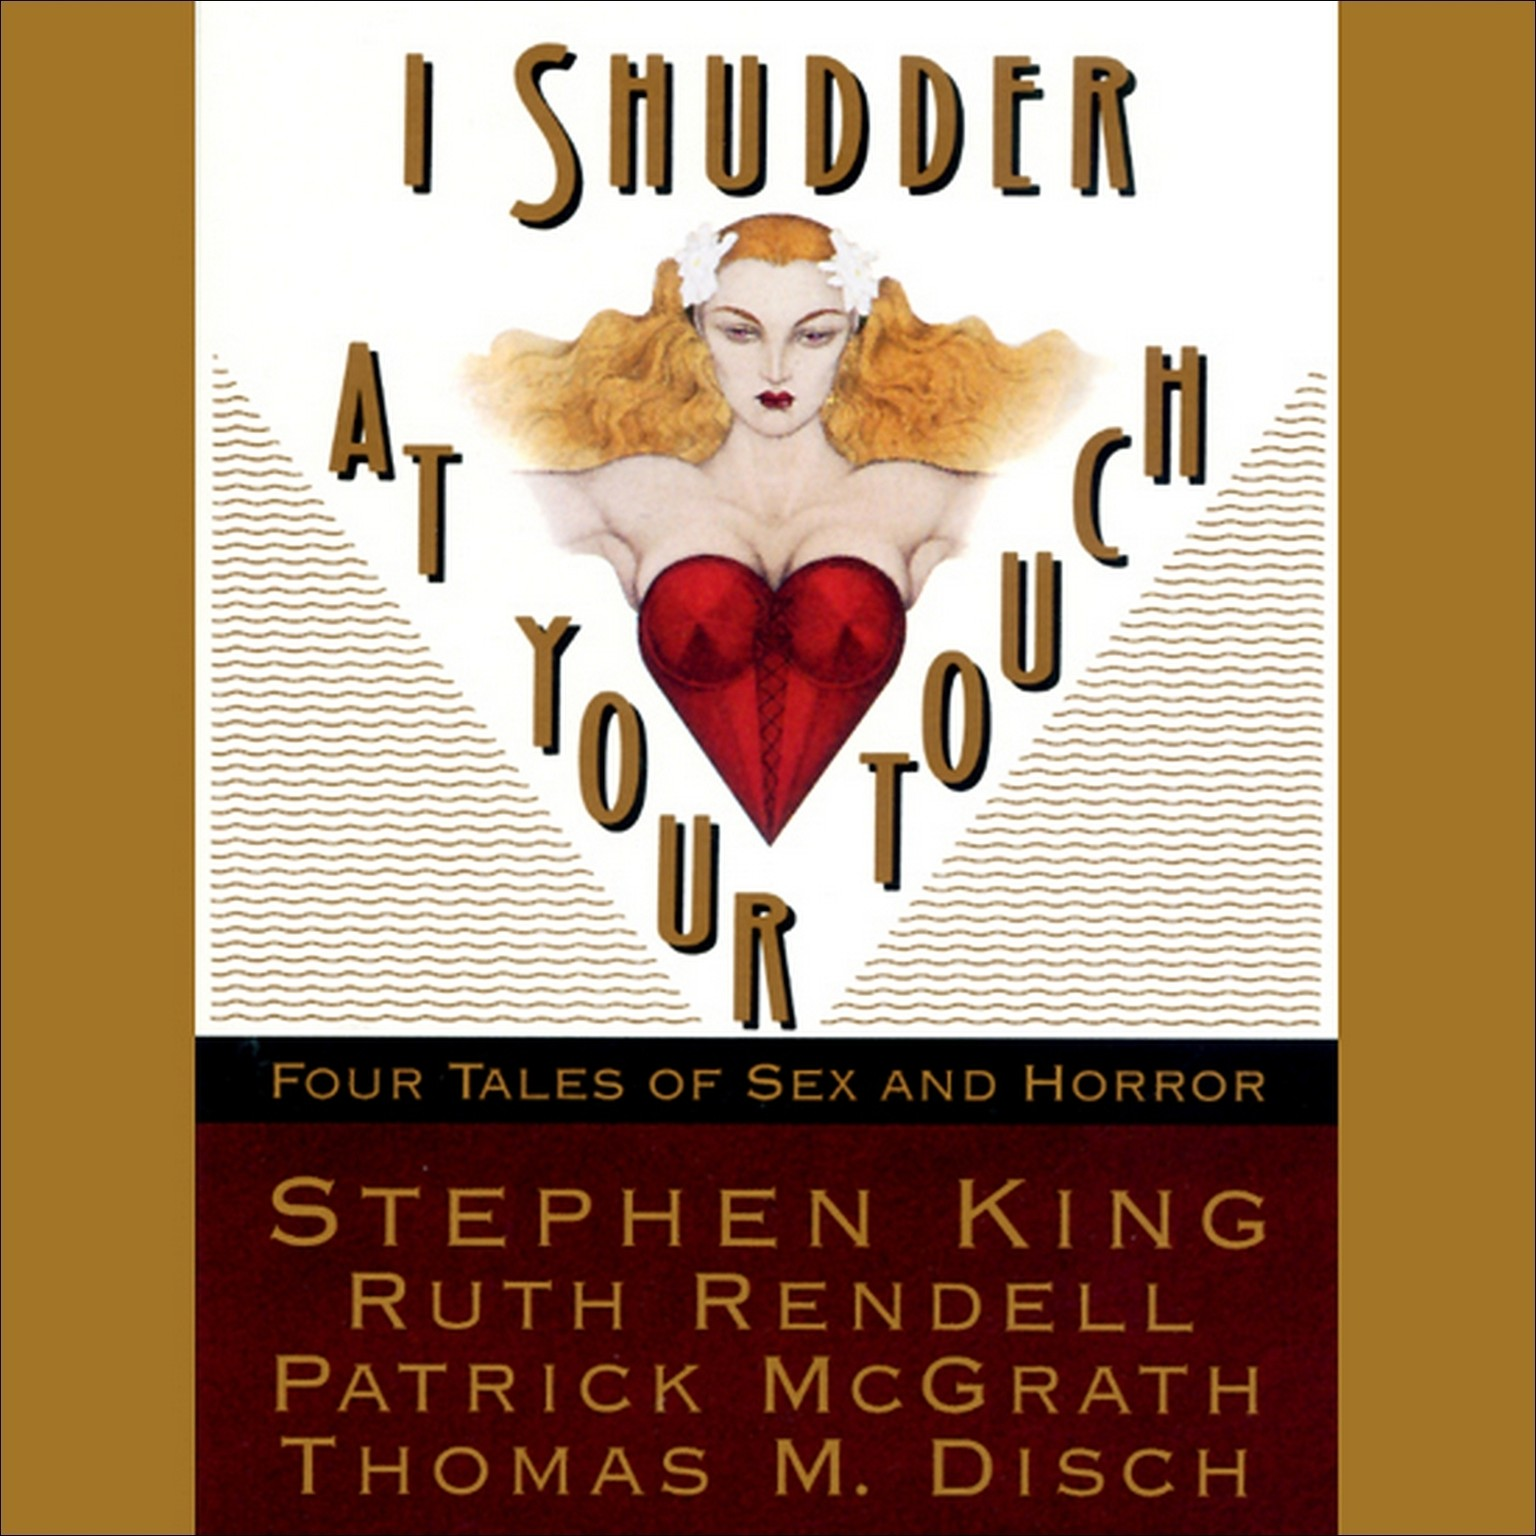 Printable I Shudder at Your Touch: Four Tales of Sex and Horror Audiobook Cover Art